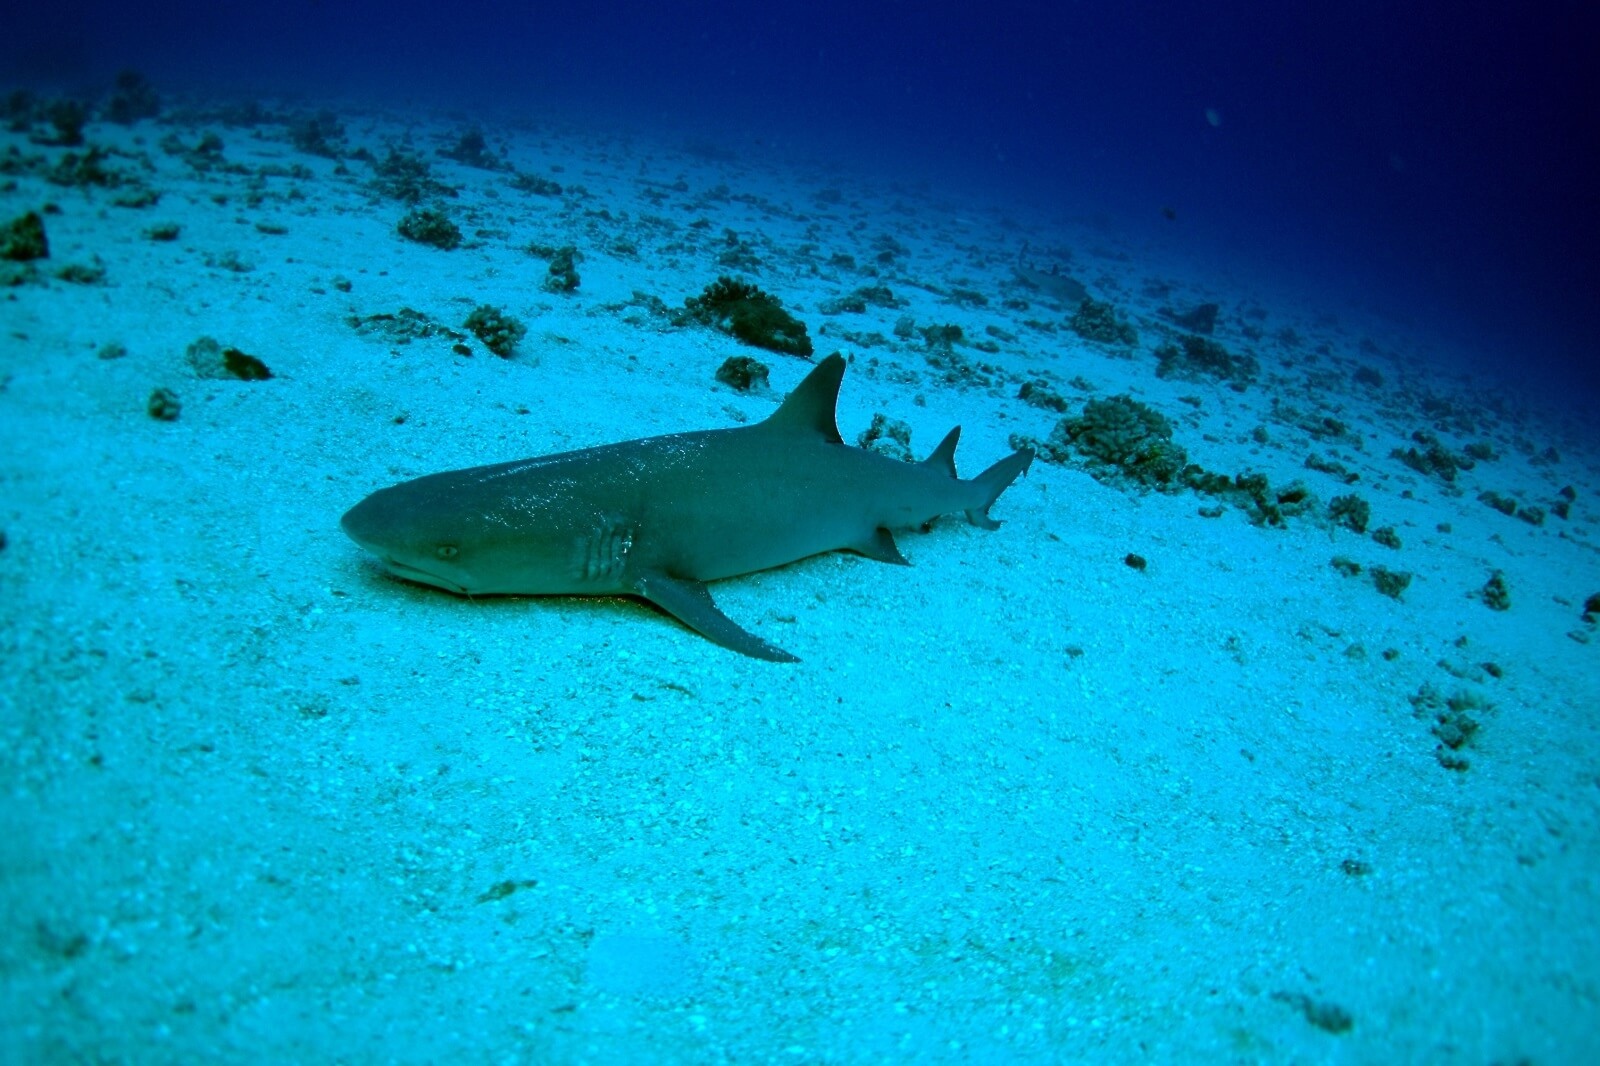 Gili mimpang underwater photography of a Reef Shark